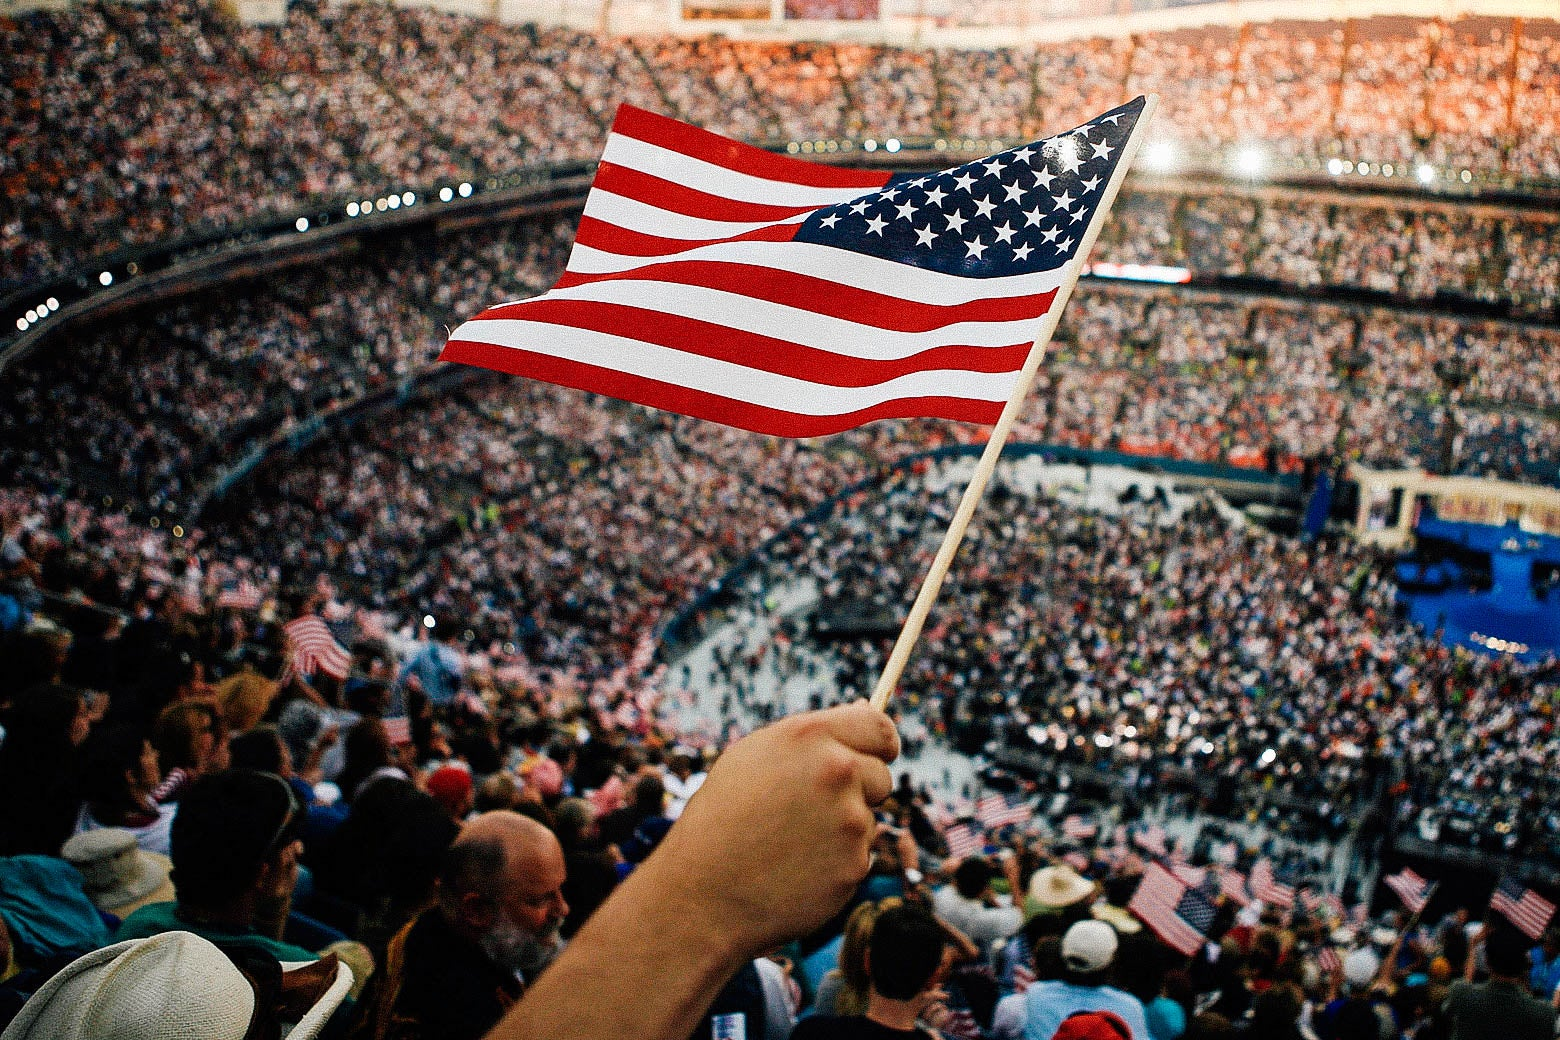 A person holding the American flag at the 2008 Democratic National Convention.